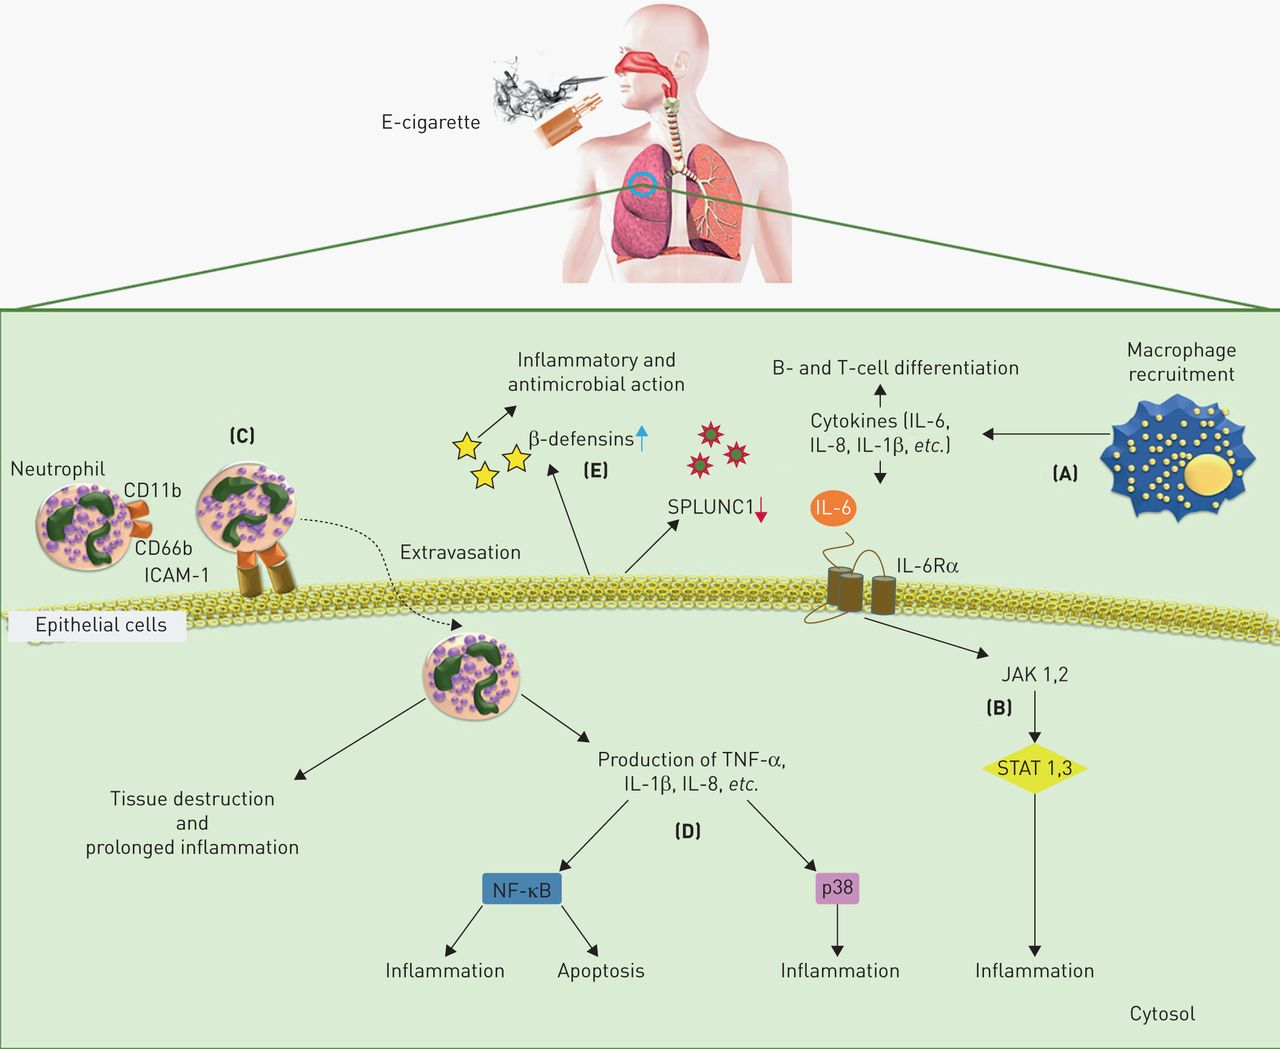 Immunological And Toxicological Risk Assessment Of E Cigarettes Drybatterycelldiagramjpg Download Figure